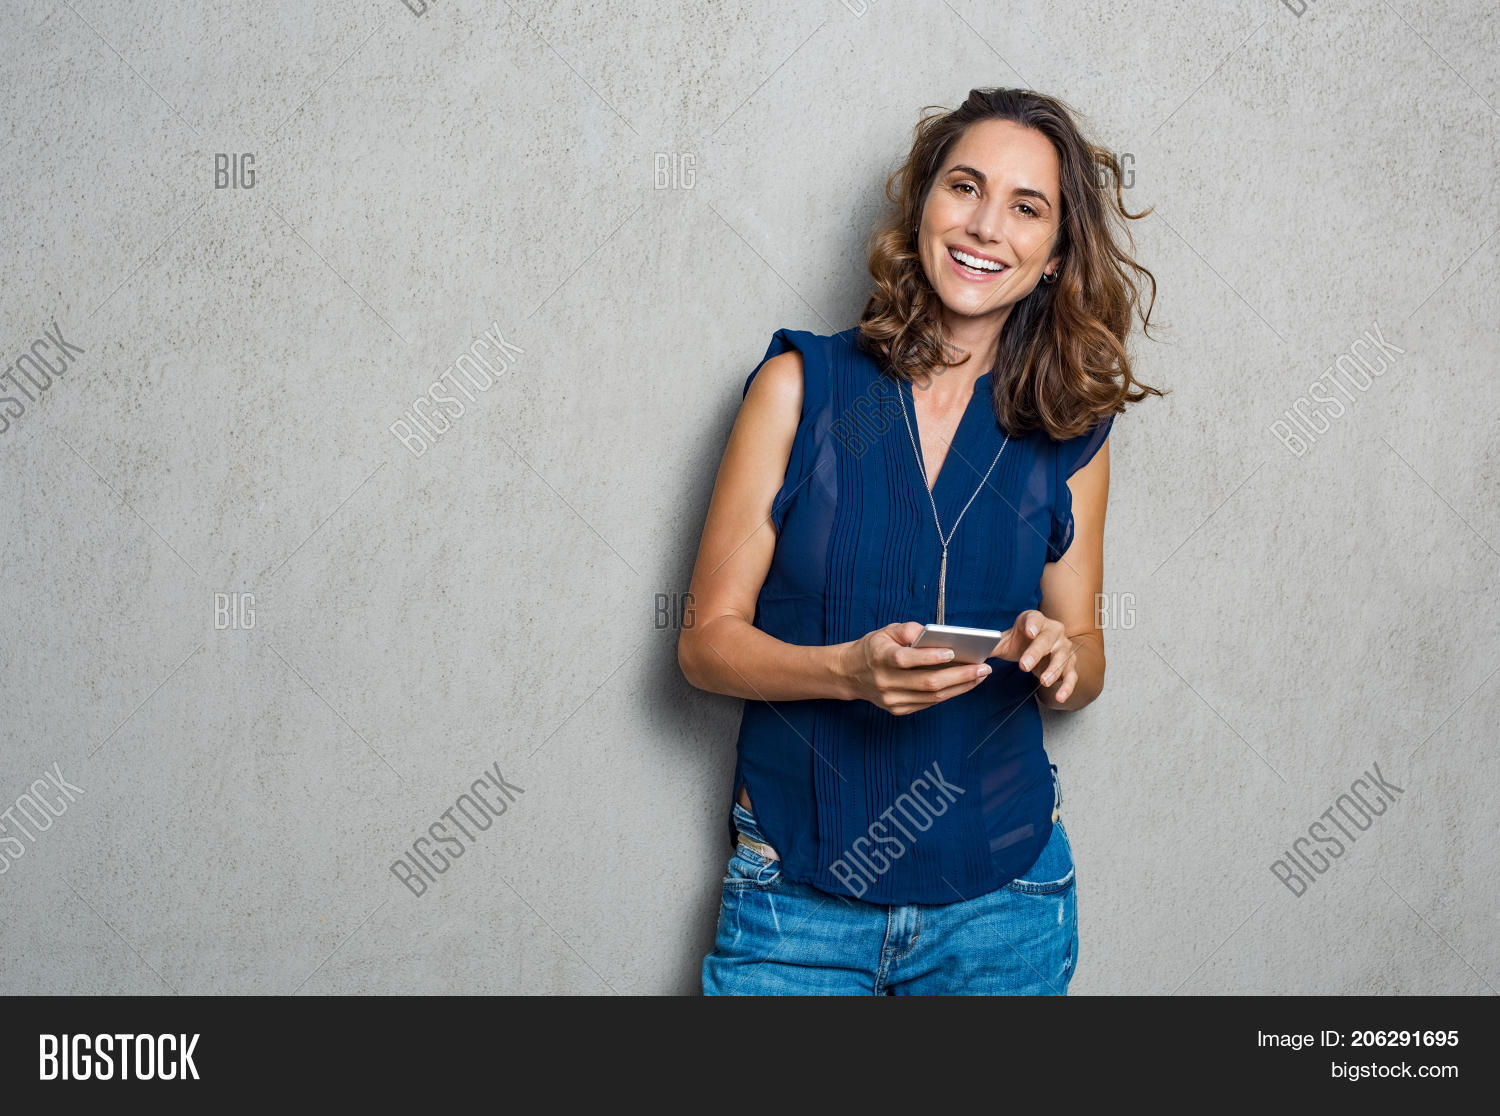 application,application mobile,background,beautiful woman,browsing,brunette woman,carefree woman,casual woman,cellphone,communication,connection,connection concept,copy space,gray background,grey background,happy,happy woman,hispanic,hispanic woman,holding,internet,internet technology,isolated,joy,latin,latin woman,laughing,looking,looking at camera,mature,message,messaging,mid adult woman,mobile,mobile phone,network,phone,smart,smart phone,smartphone,smile,smiling woman,technology,texting,typing,typing on phone,using,wireless,woman